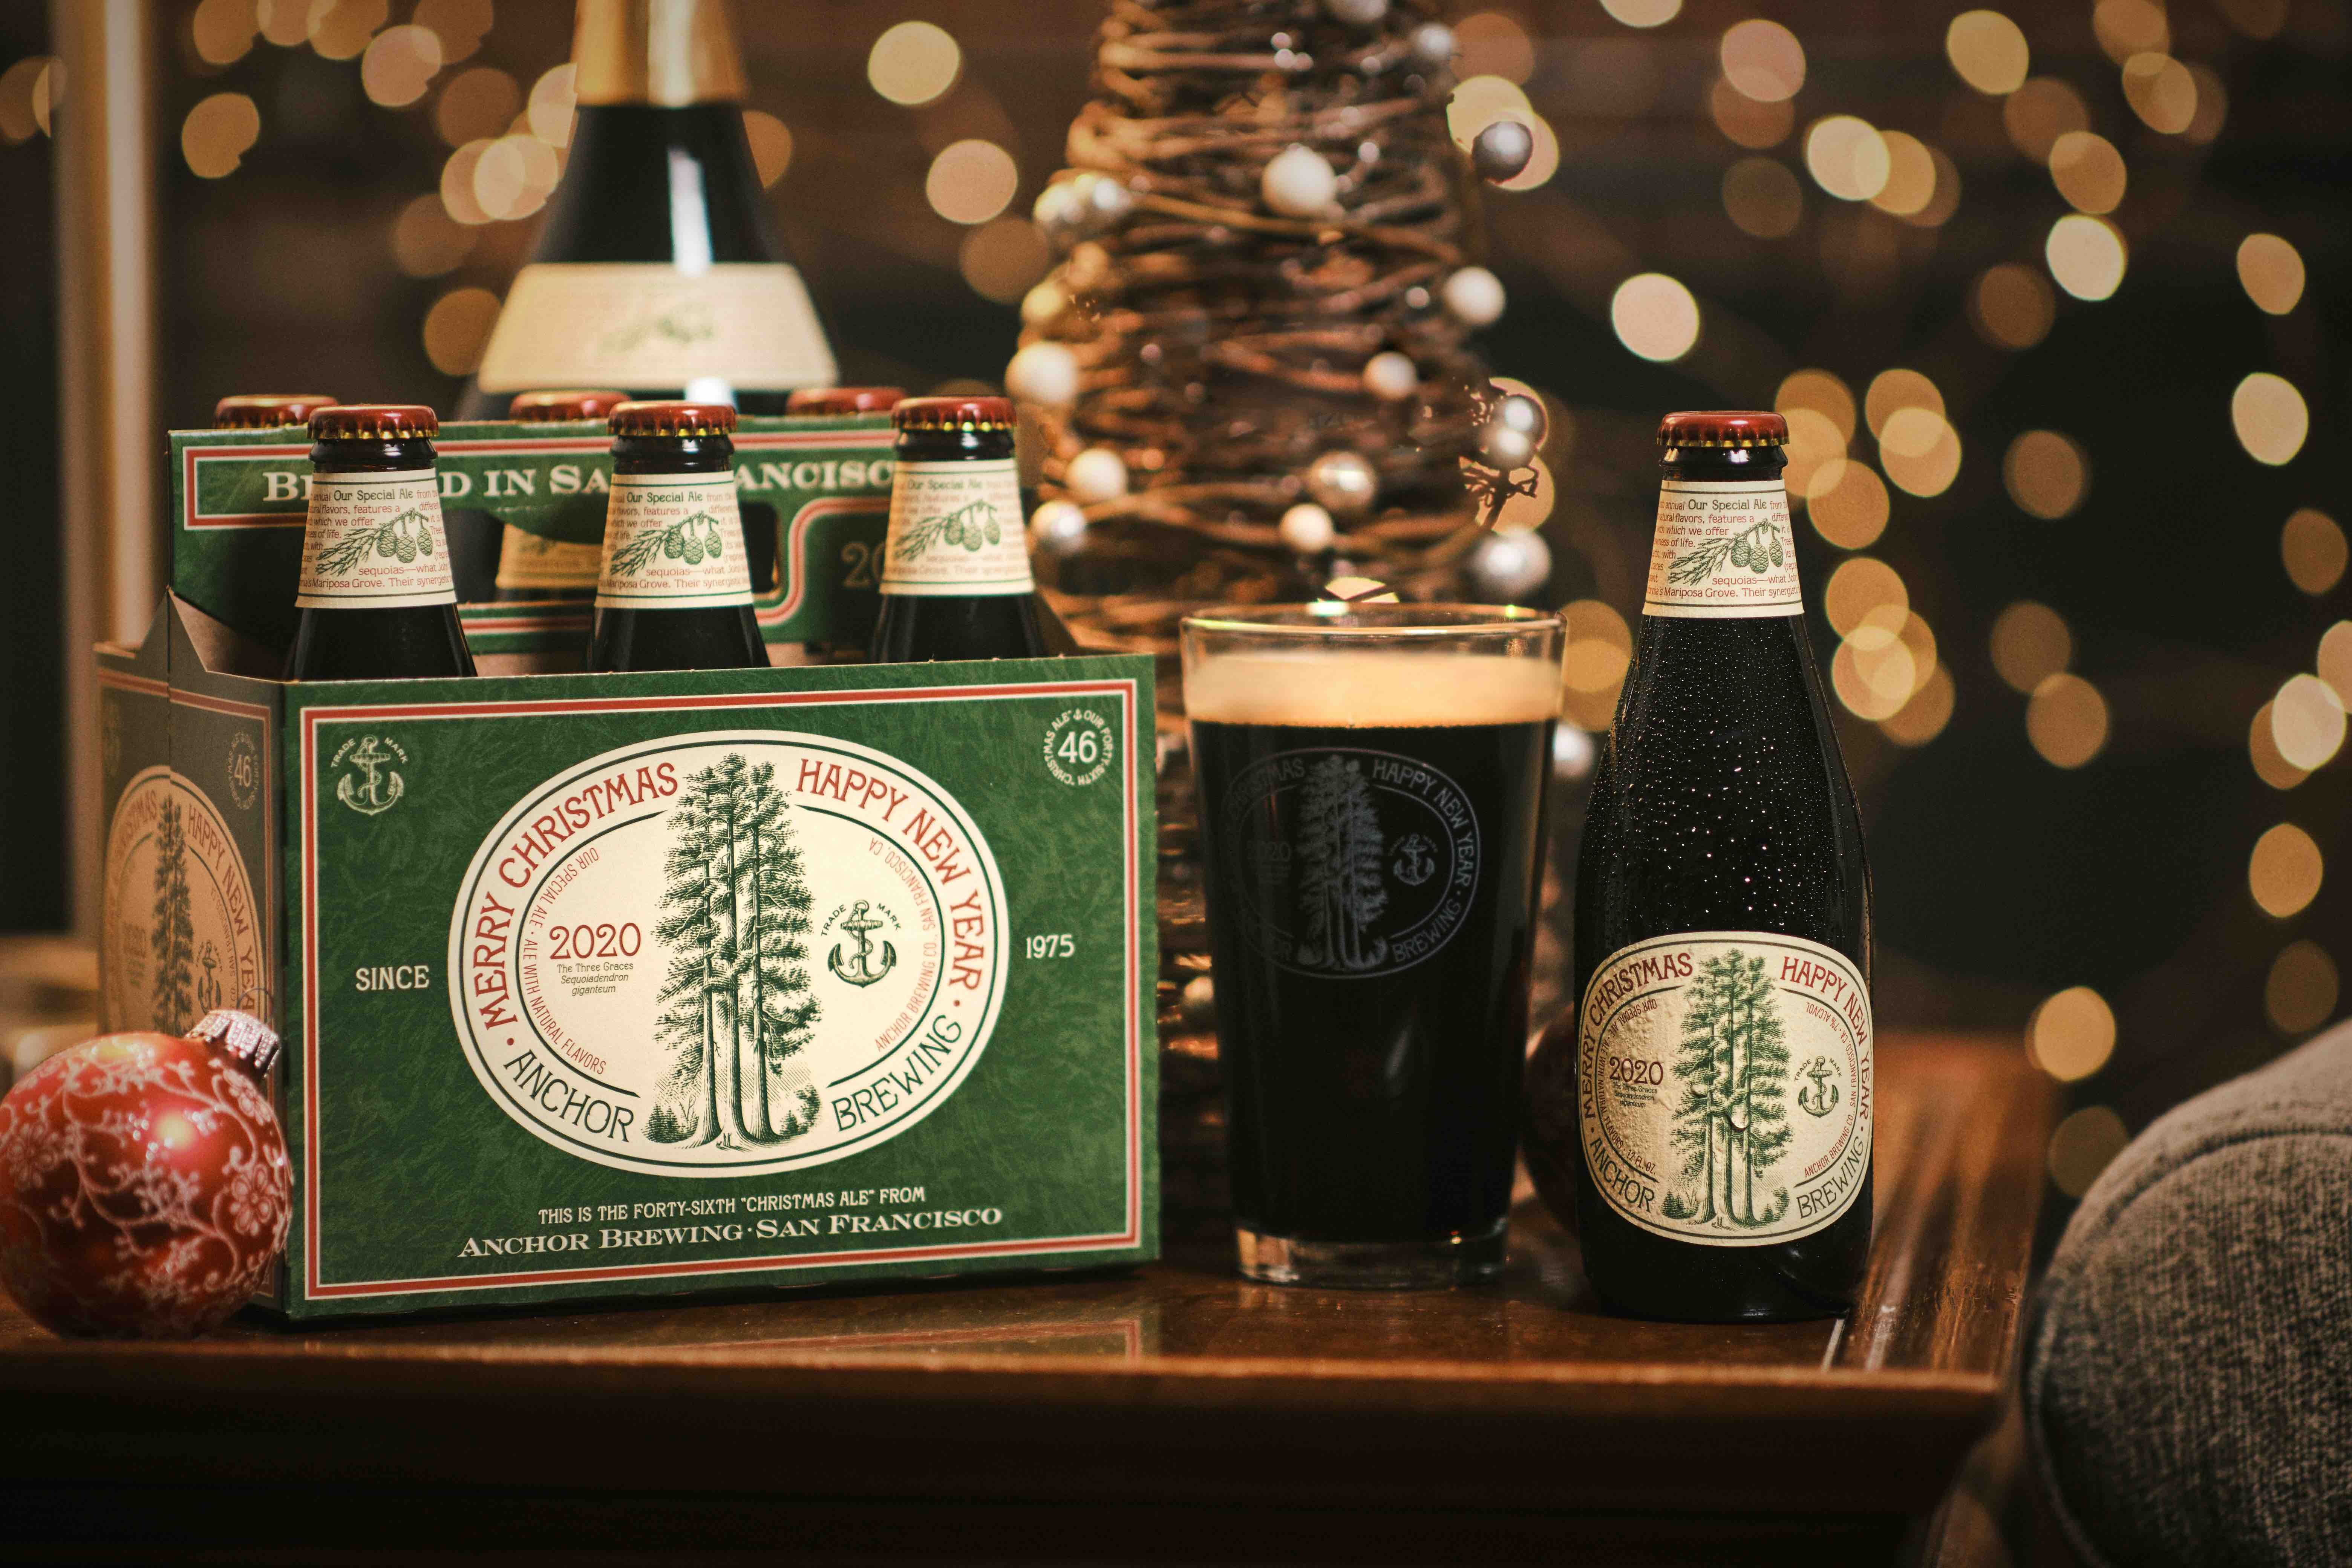 Christmas Beers 2020 Anchor Brewing Continues with a 46 Year Tradition with its 2020